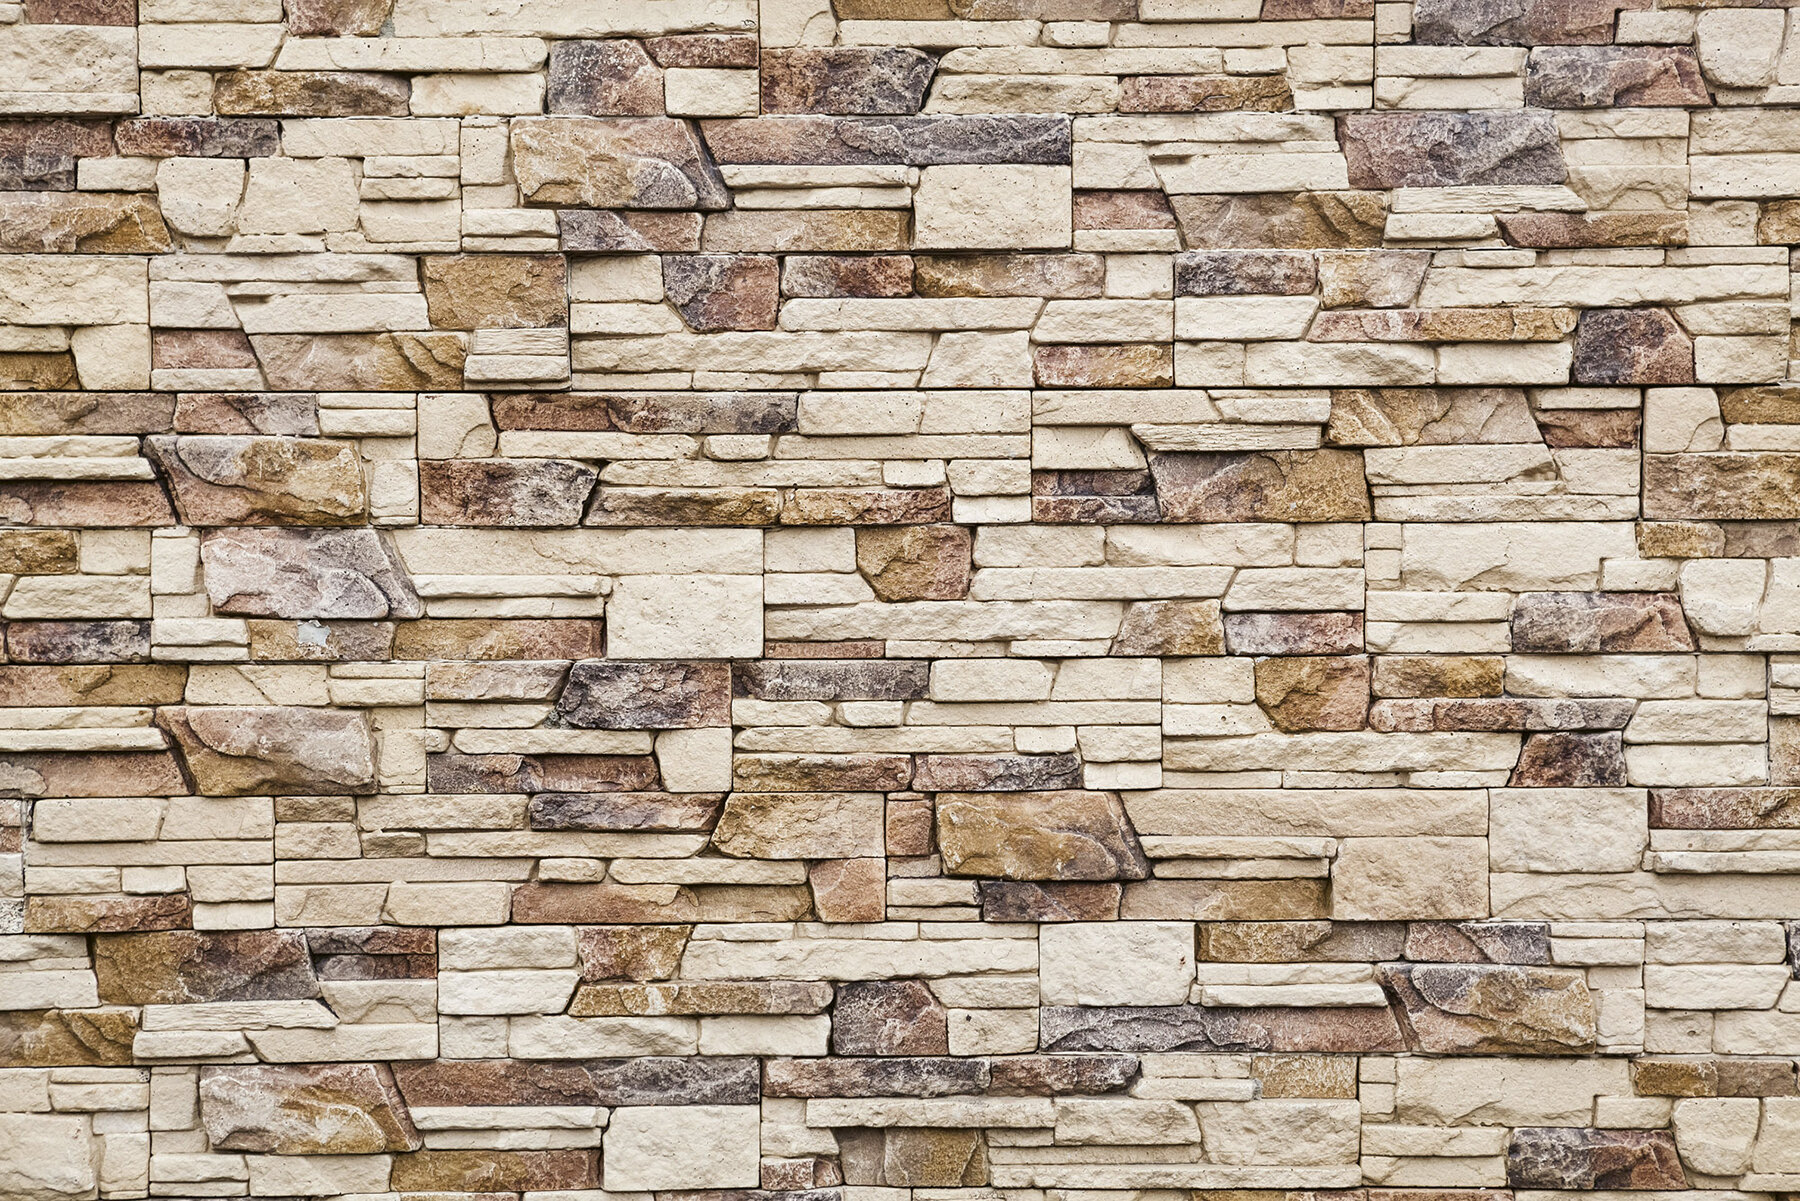 Stone Wall Mural 8-panel Photomural Indoor Vinyl Coated Paper Faux Materials